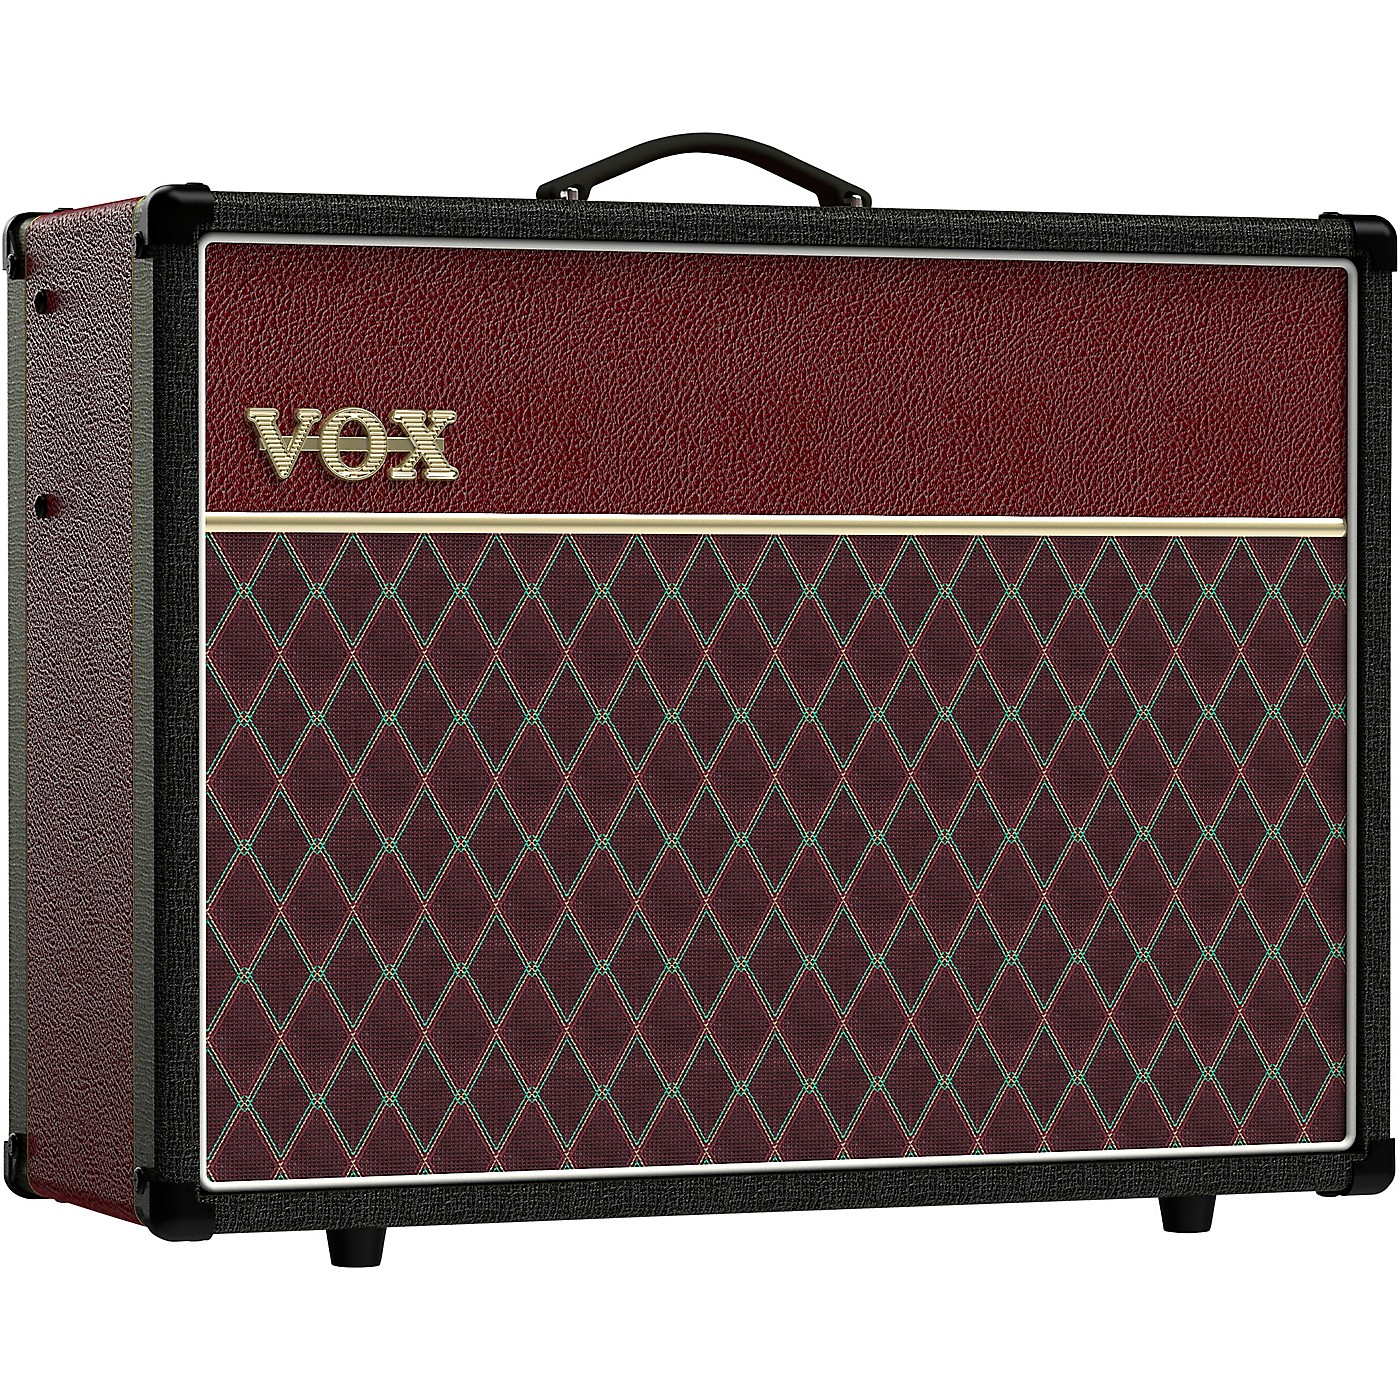 Vox AC30S1 Limited-Edition Two-Tone 30W 1x12 Tube Guitar Combo Amp thumbnail